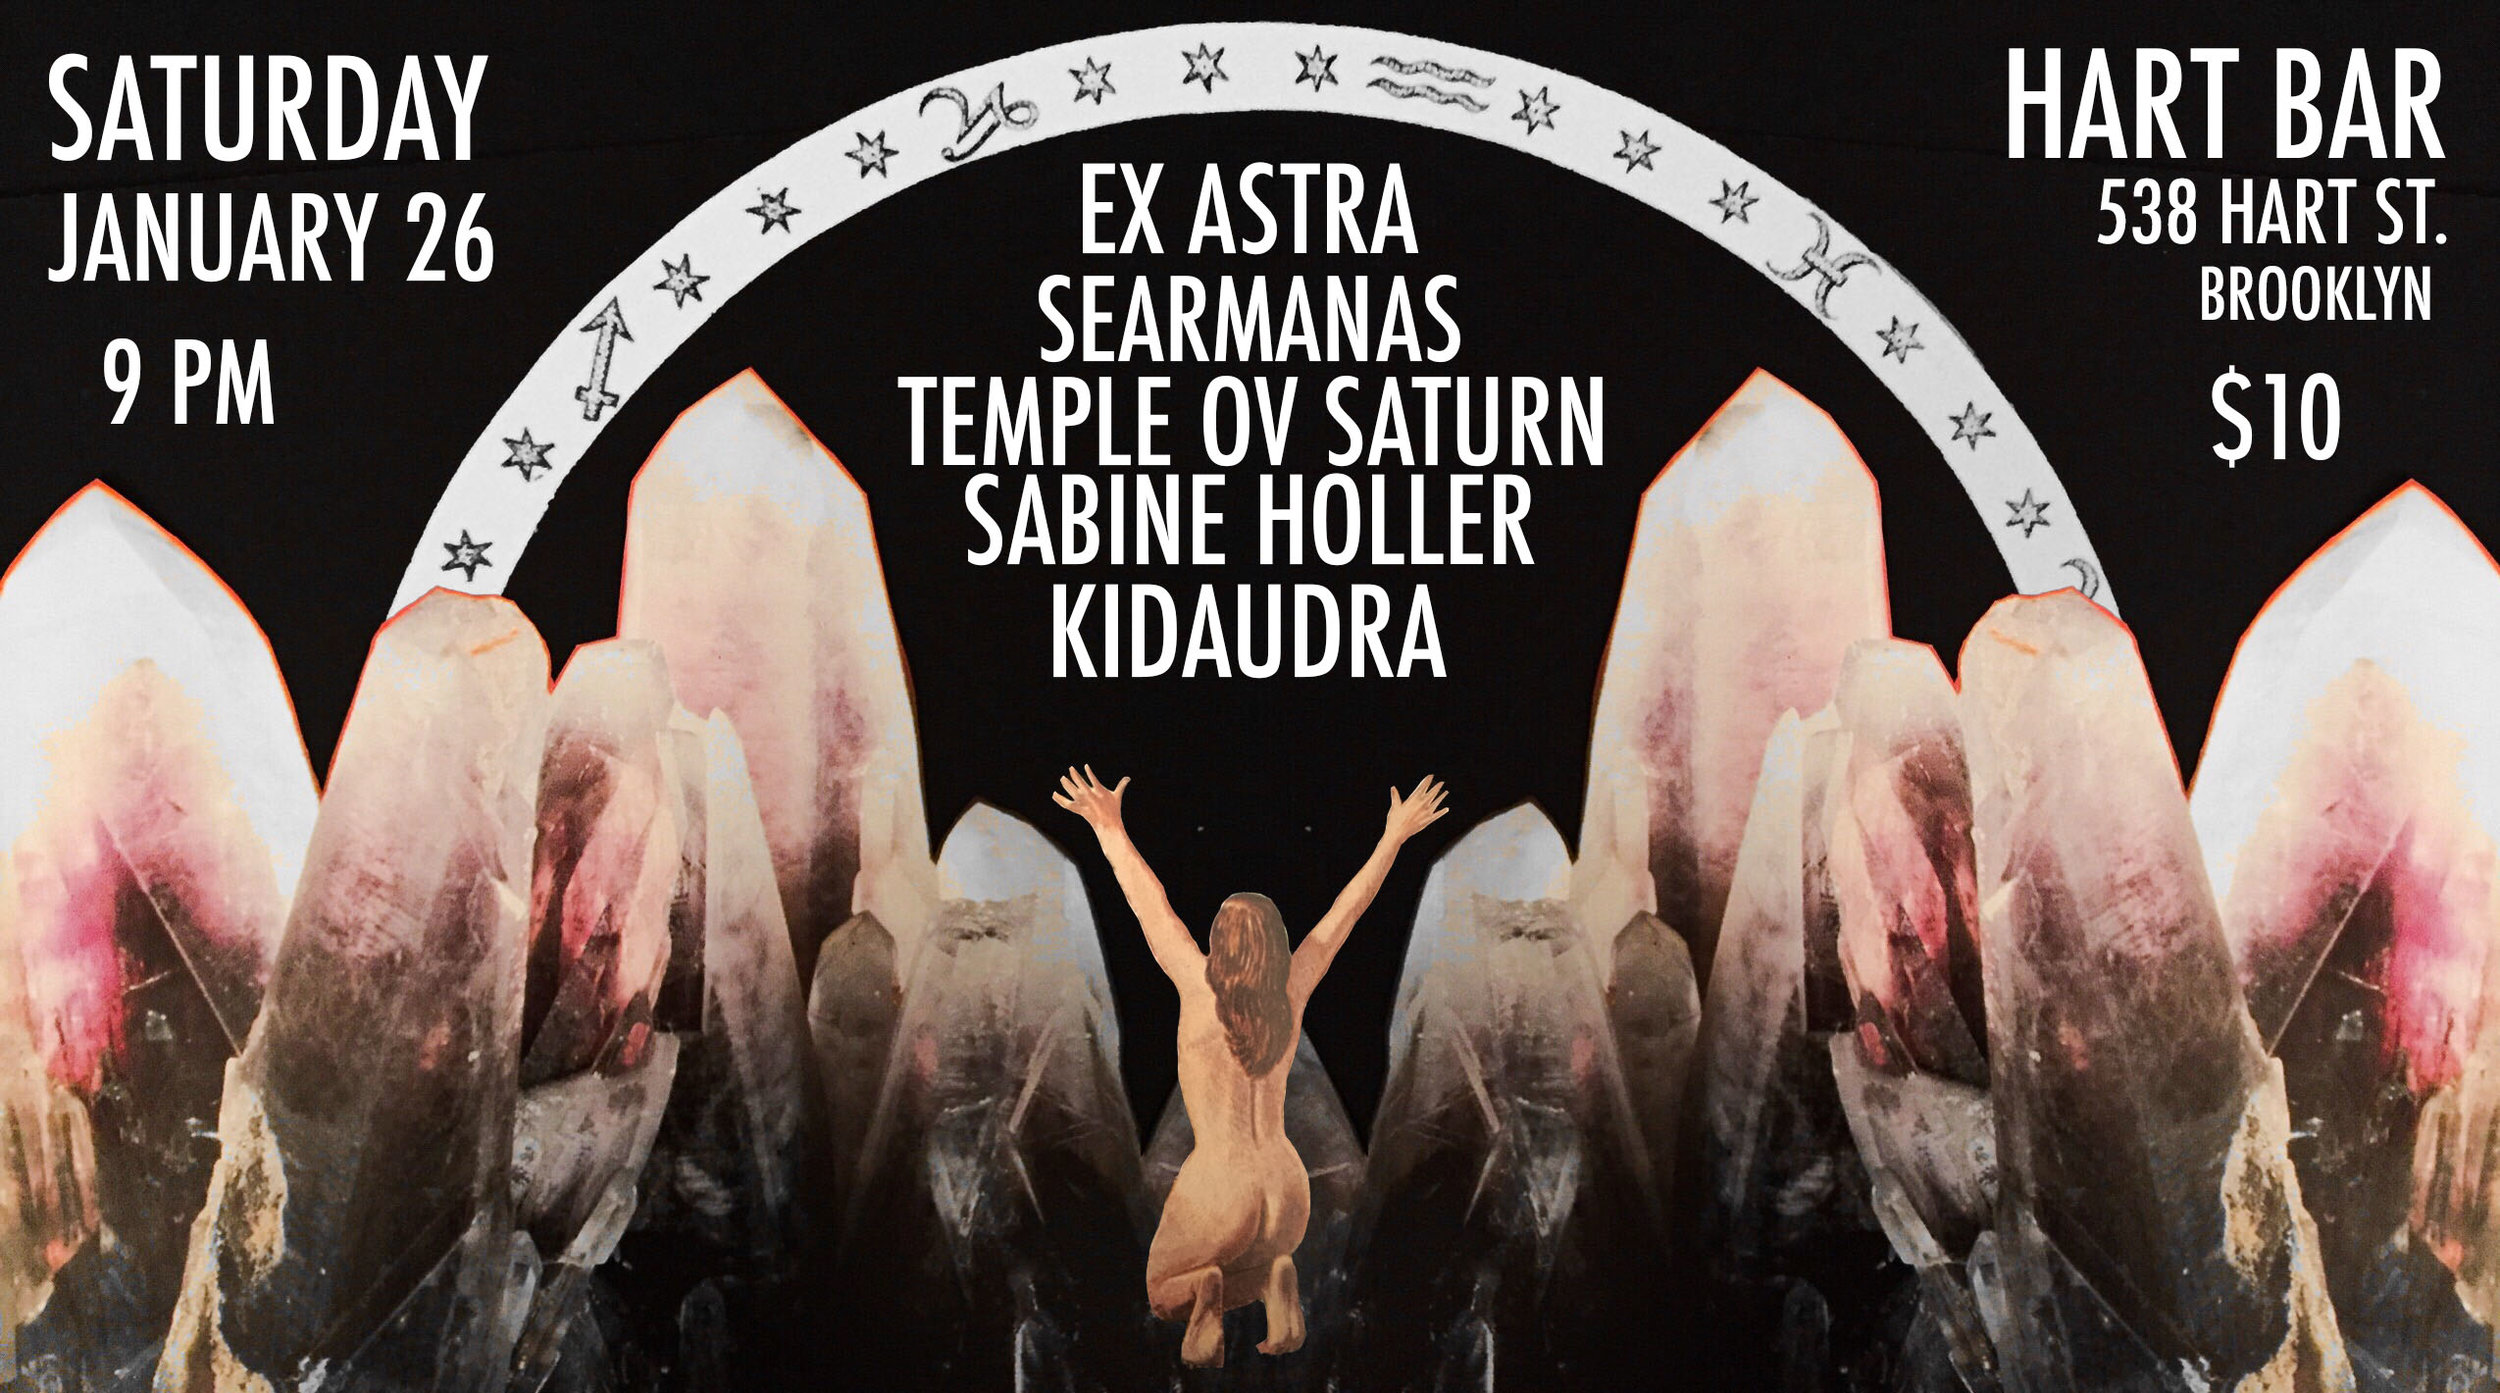 Saturday Jan 26 at Hart Bar in Brooklyn: Ex Astra, Searmanas, Temple ov Saturn, Sabine Holler, Kidaudra